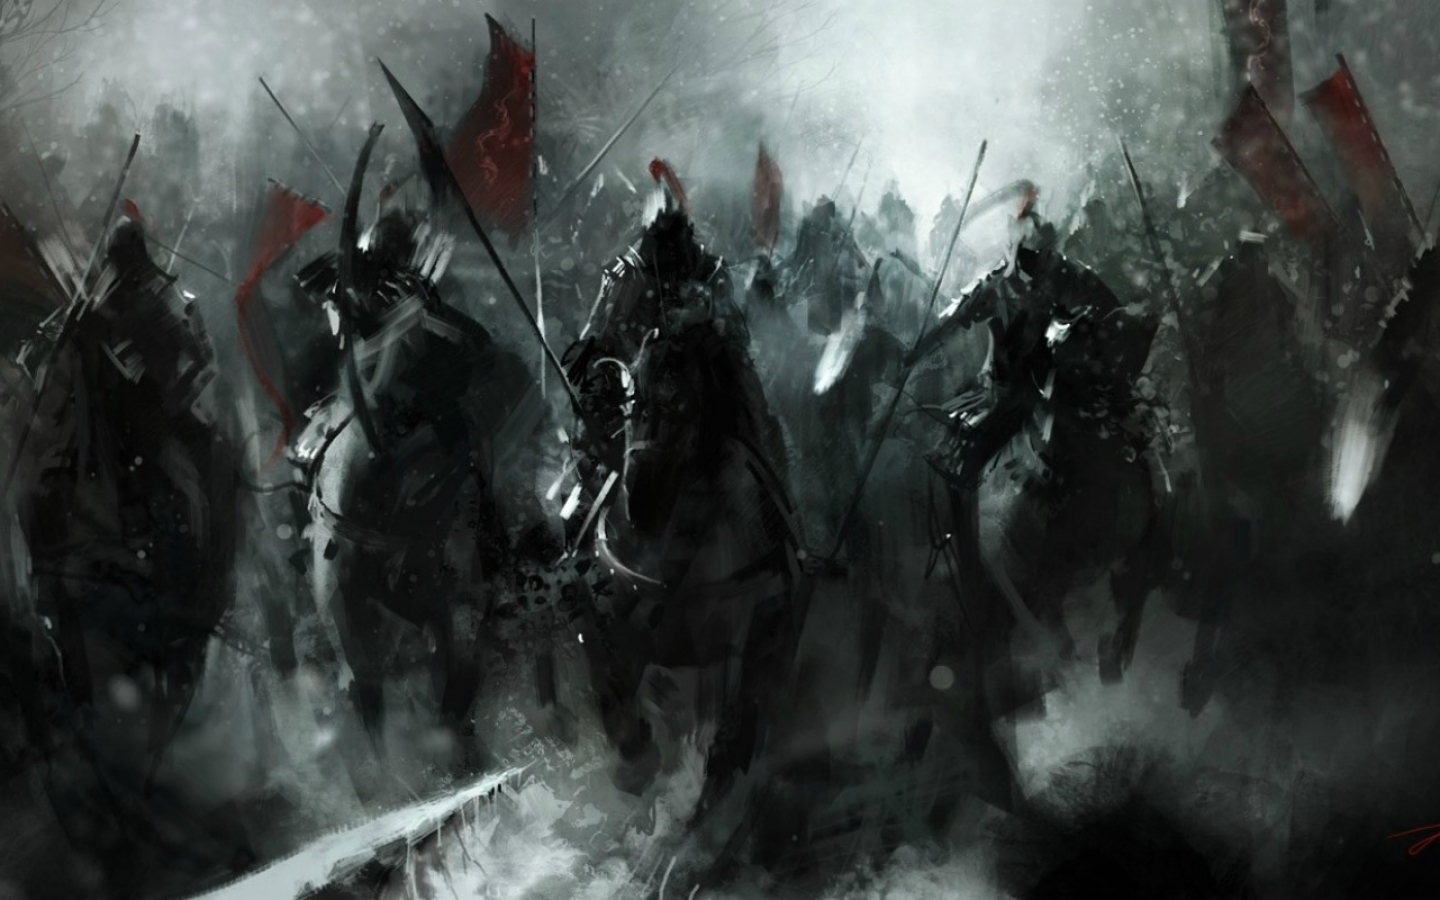 Beginning of Epic Battle wallpaper   ForWallpapercom 1440x900